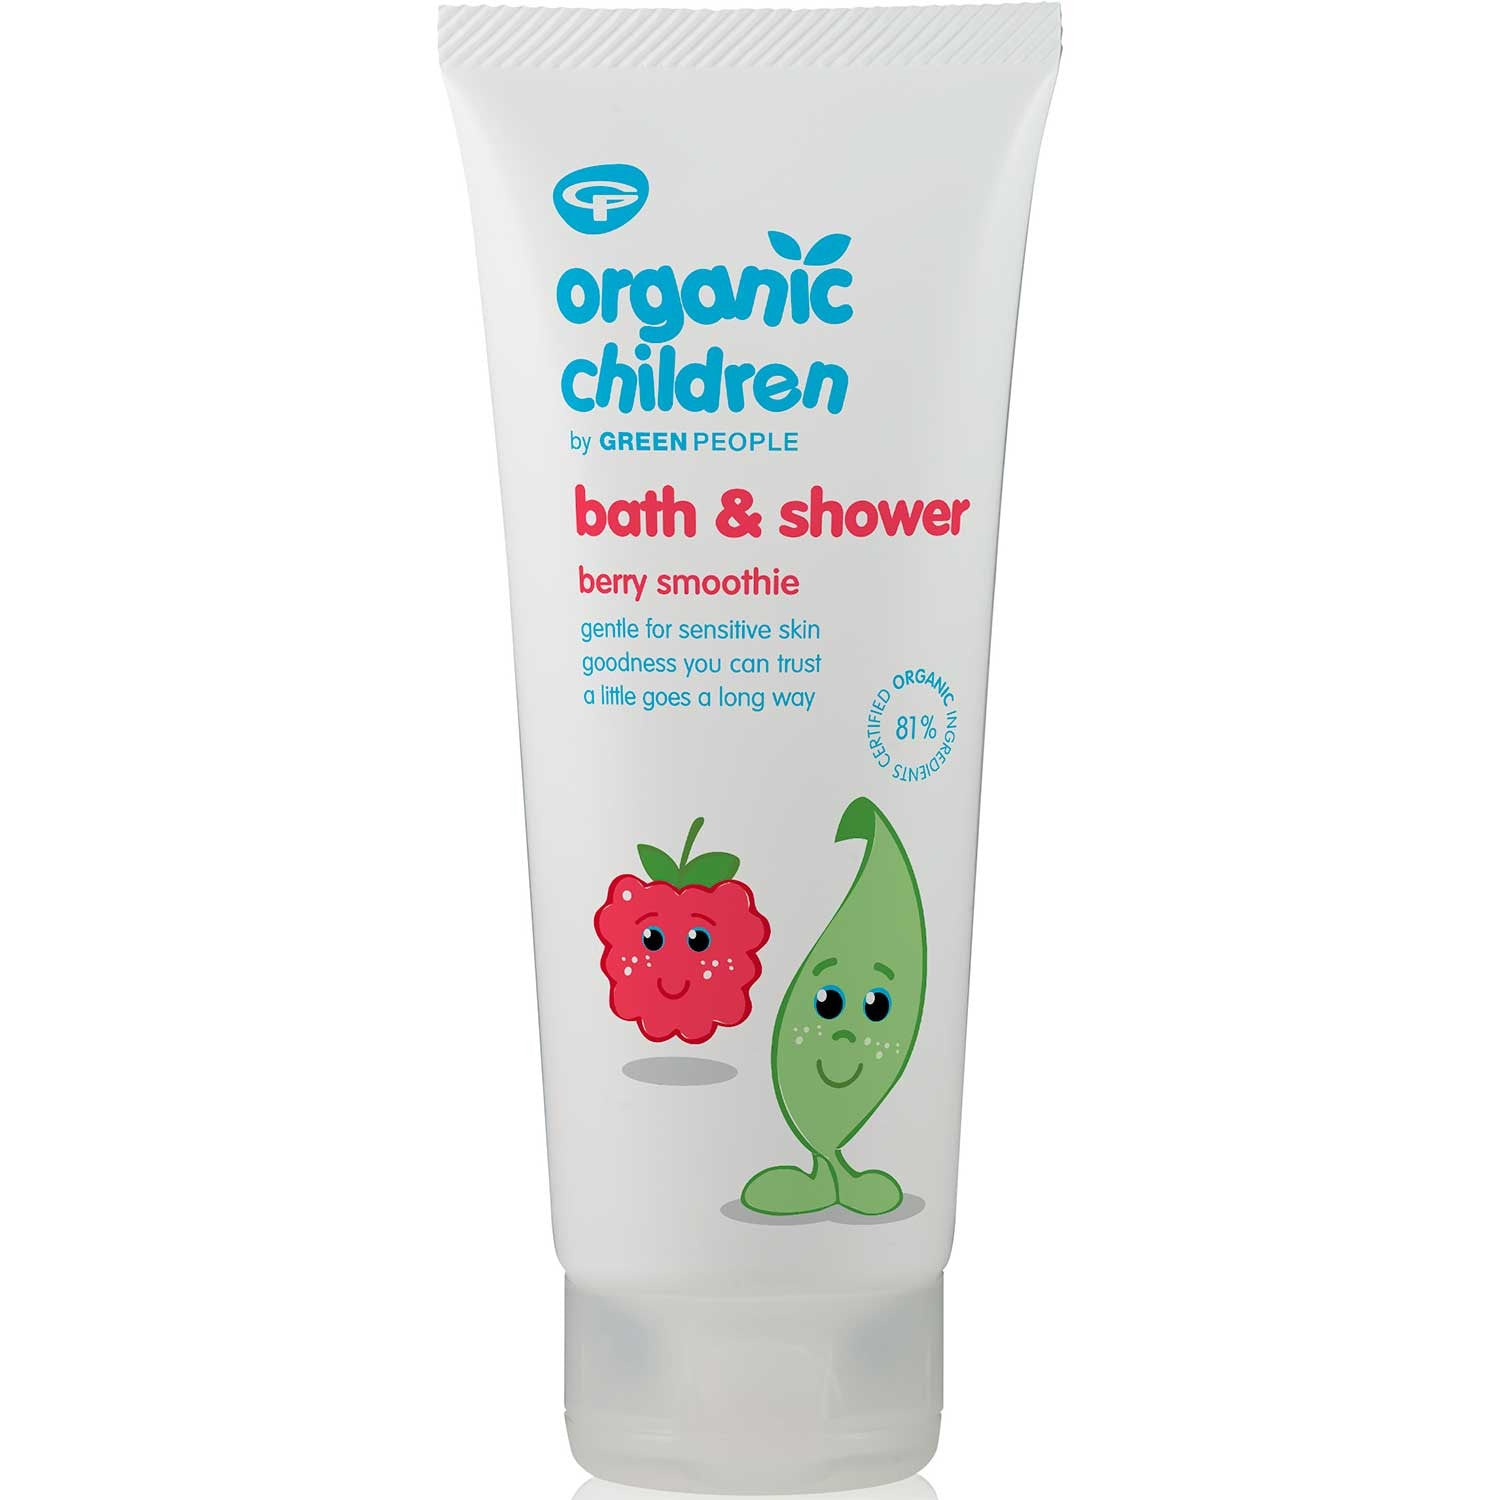 Green People Organic Children Bath & Shower Gel - Berry Smoothie, 200 ml.-NaturesWisdom